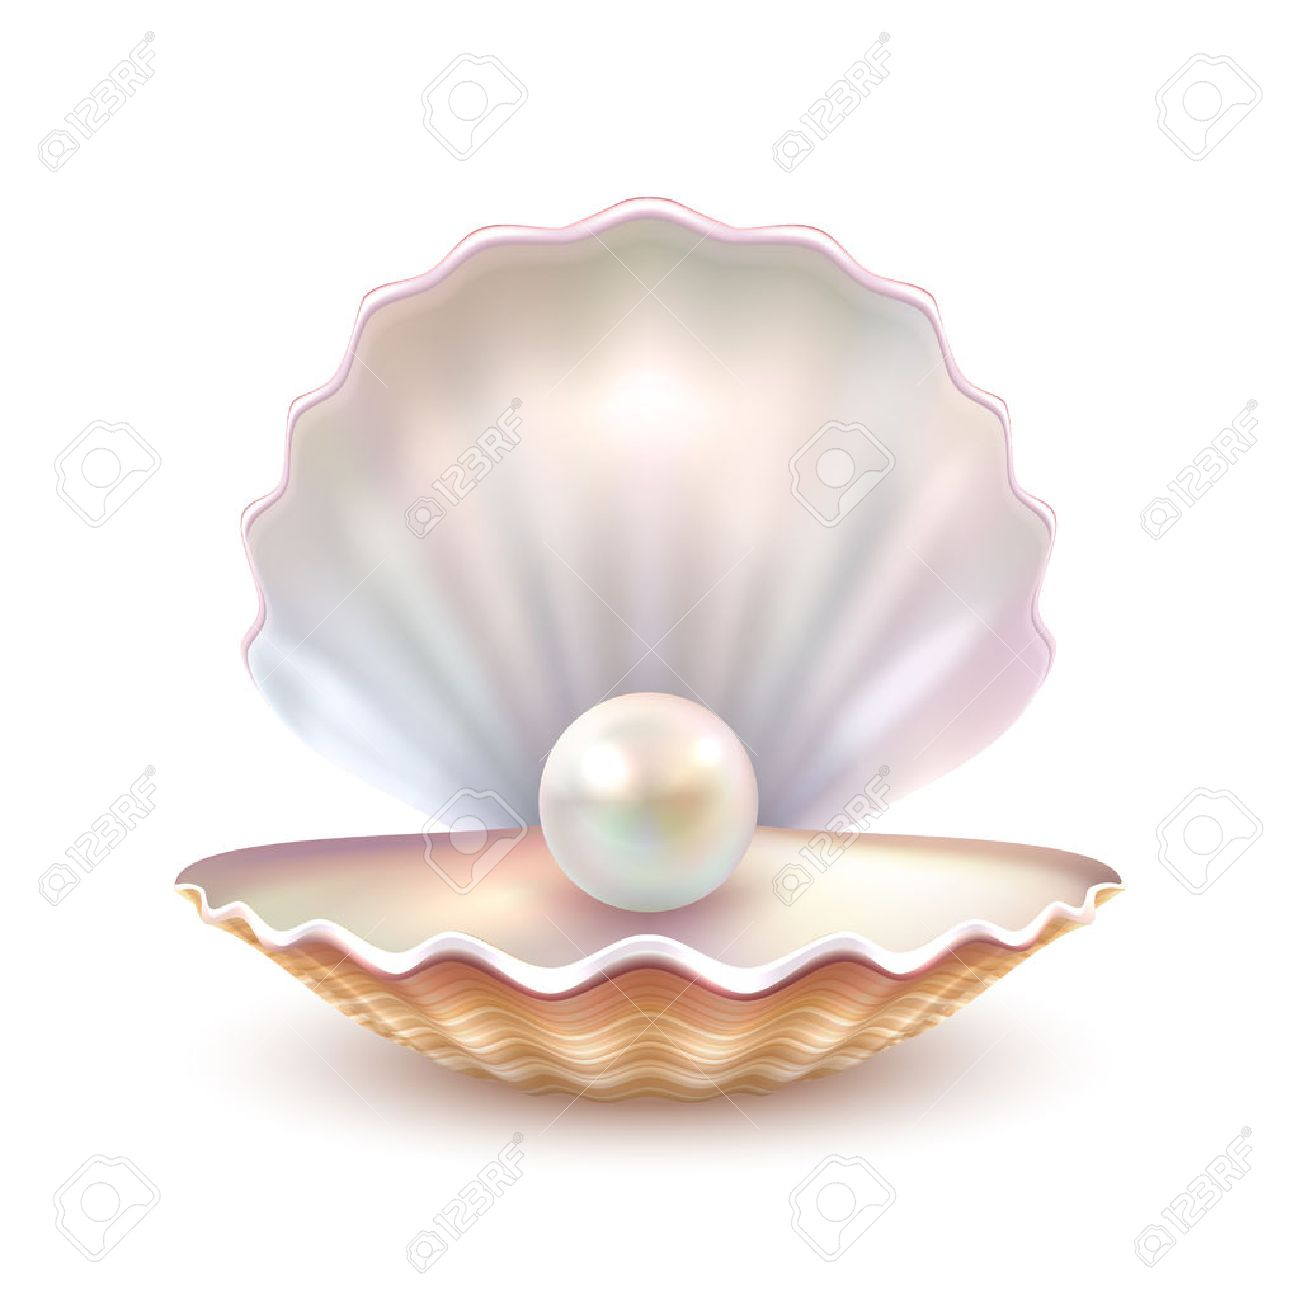 Finest quality beautiful natural open pearl shell close up realistic single valuable object image vector illustration Stock Vector - 66734955